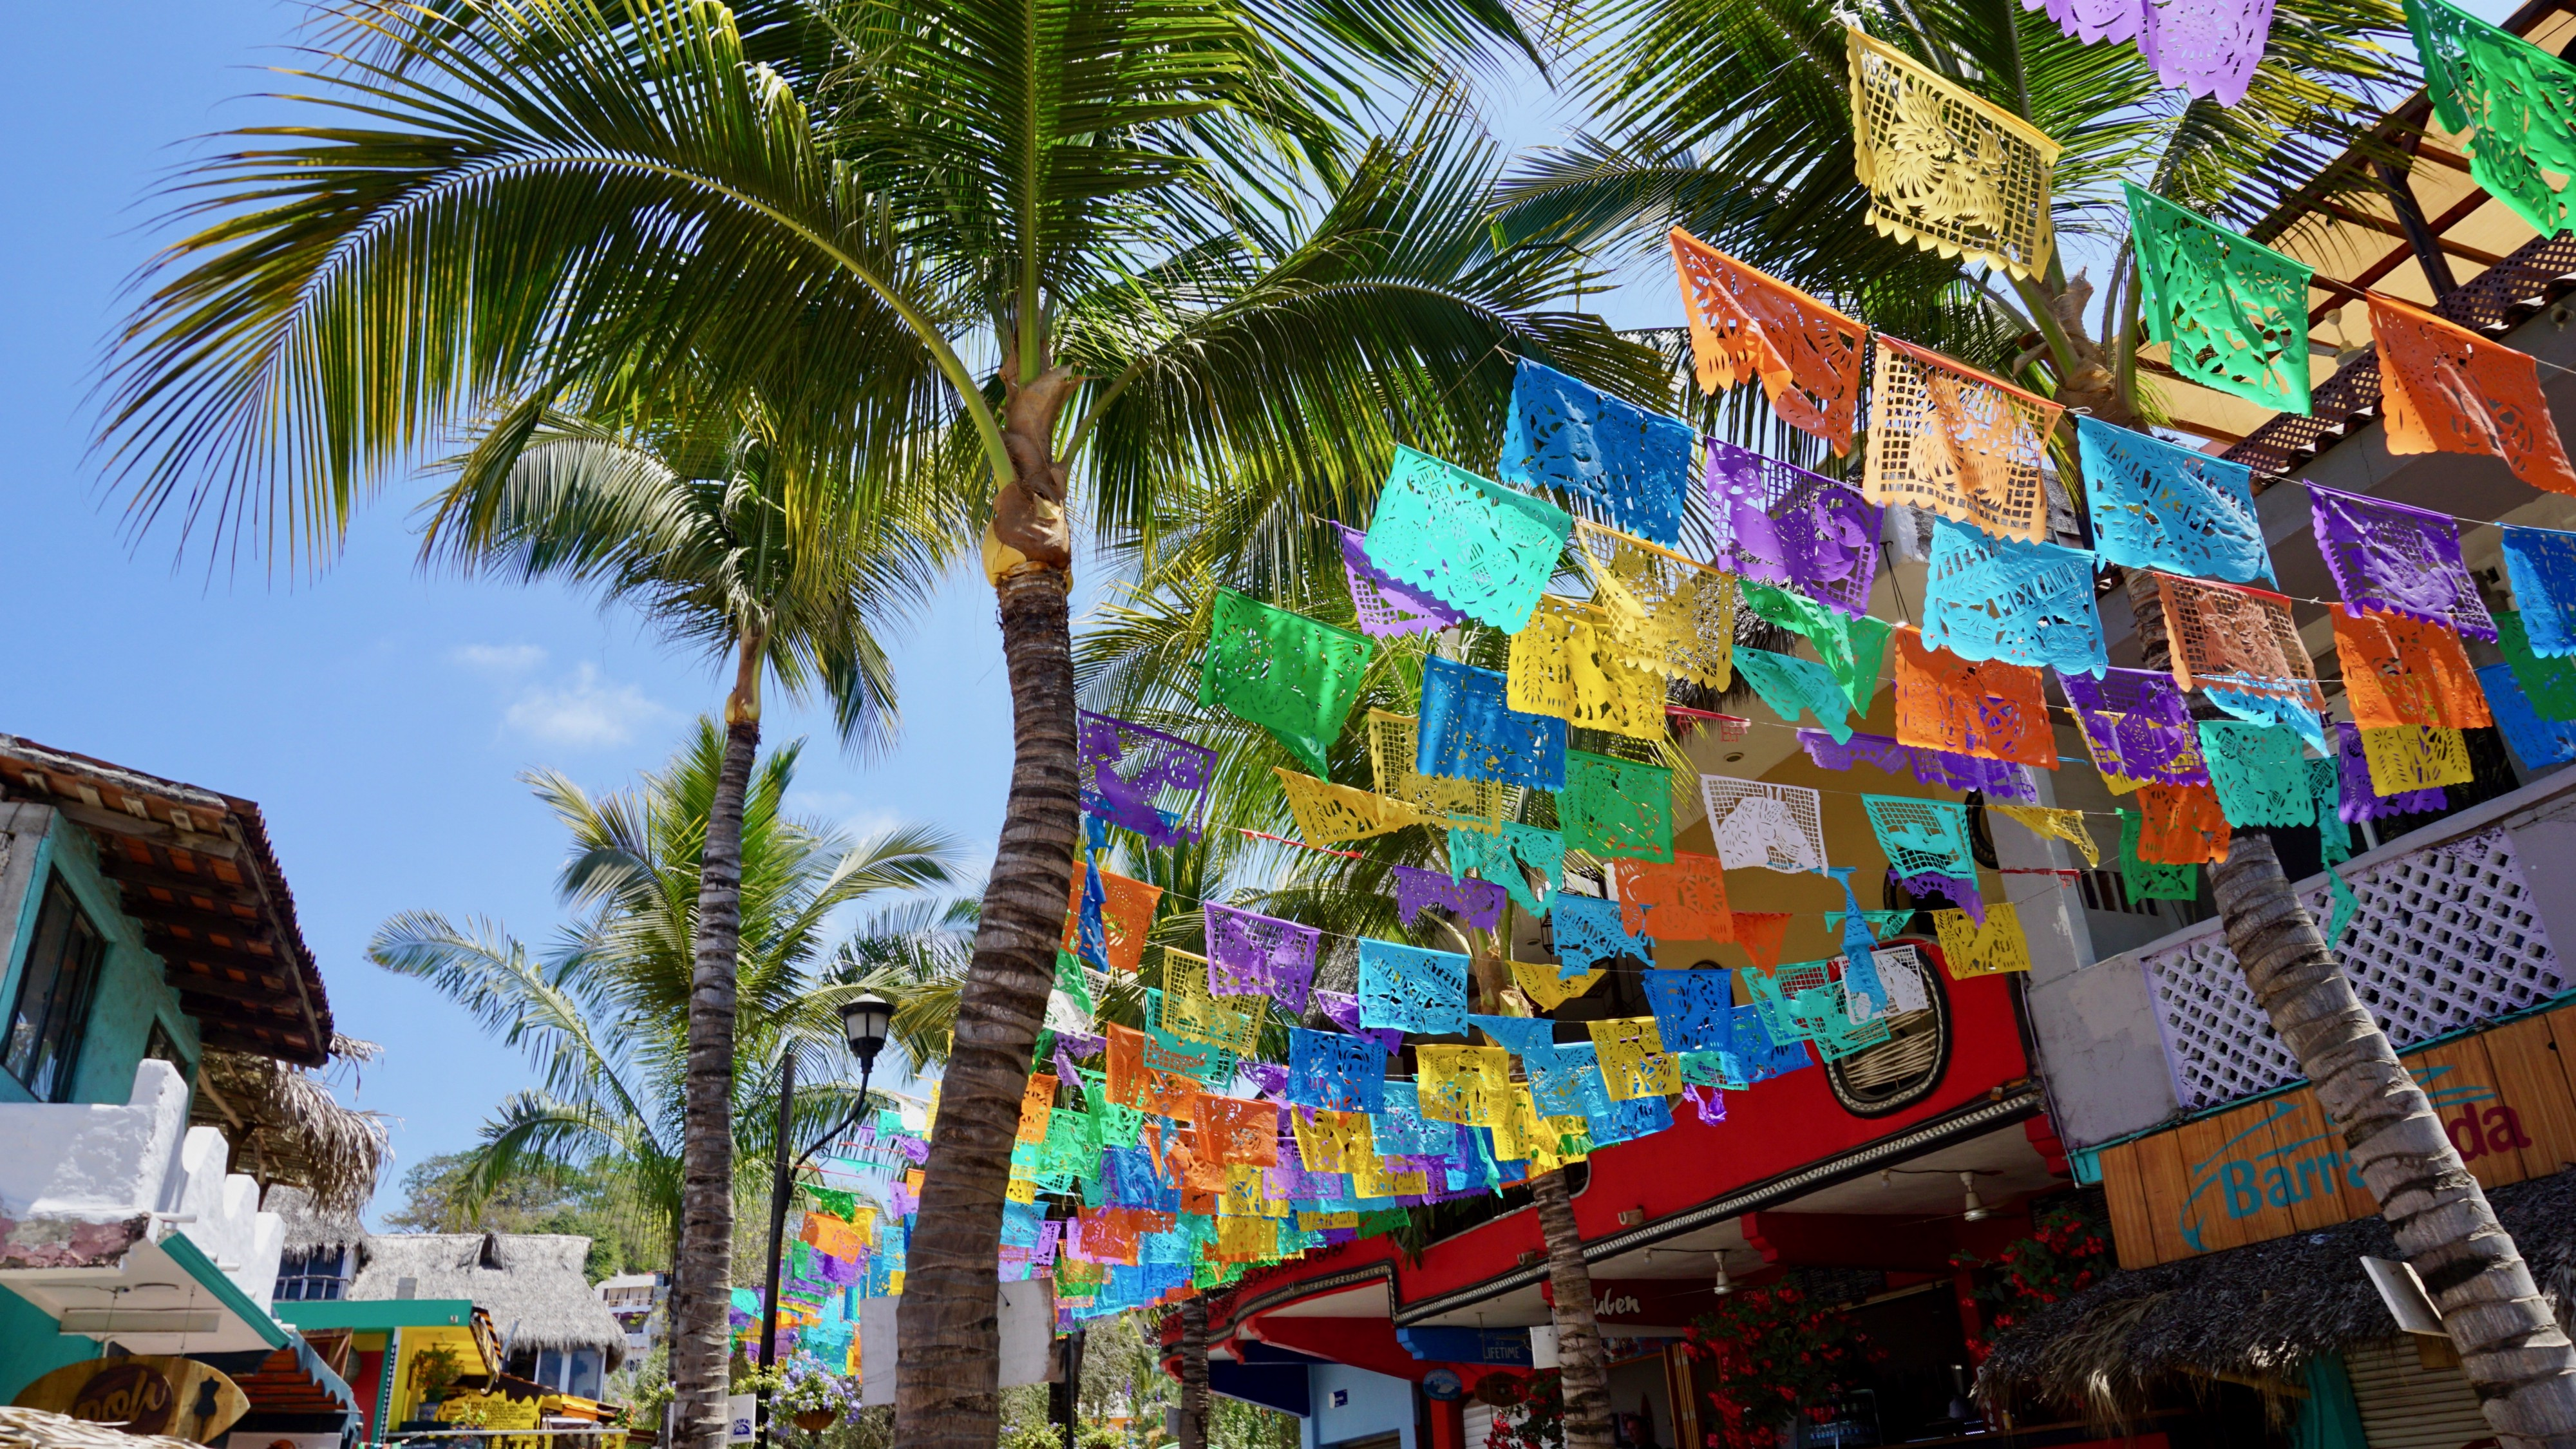 Field Report Sayulita A Pueblo Magico On Mexico S West Coast By Cole Kennedy This There That Medium